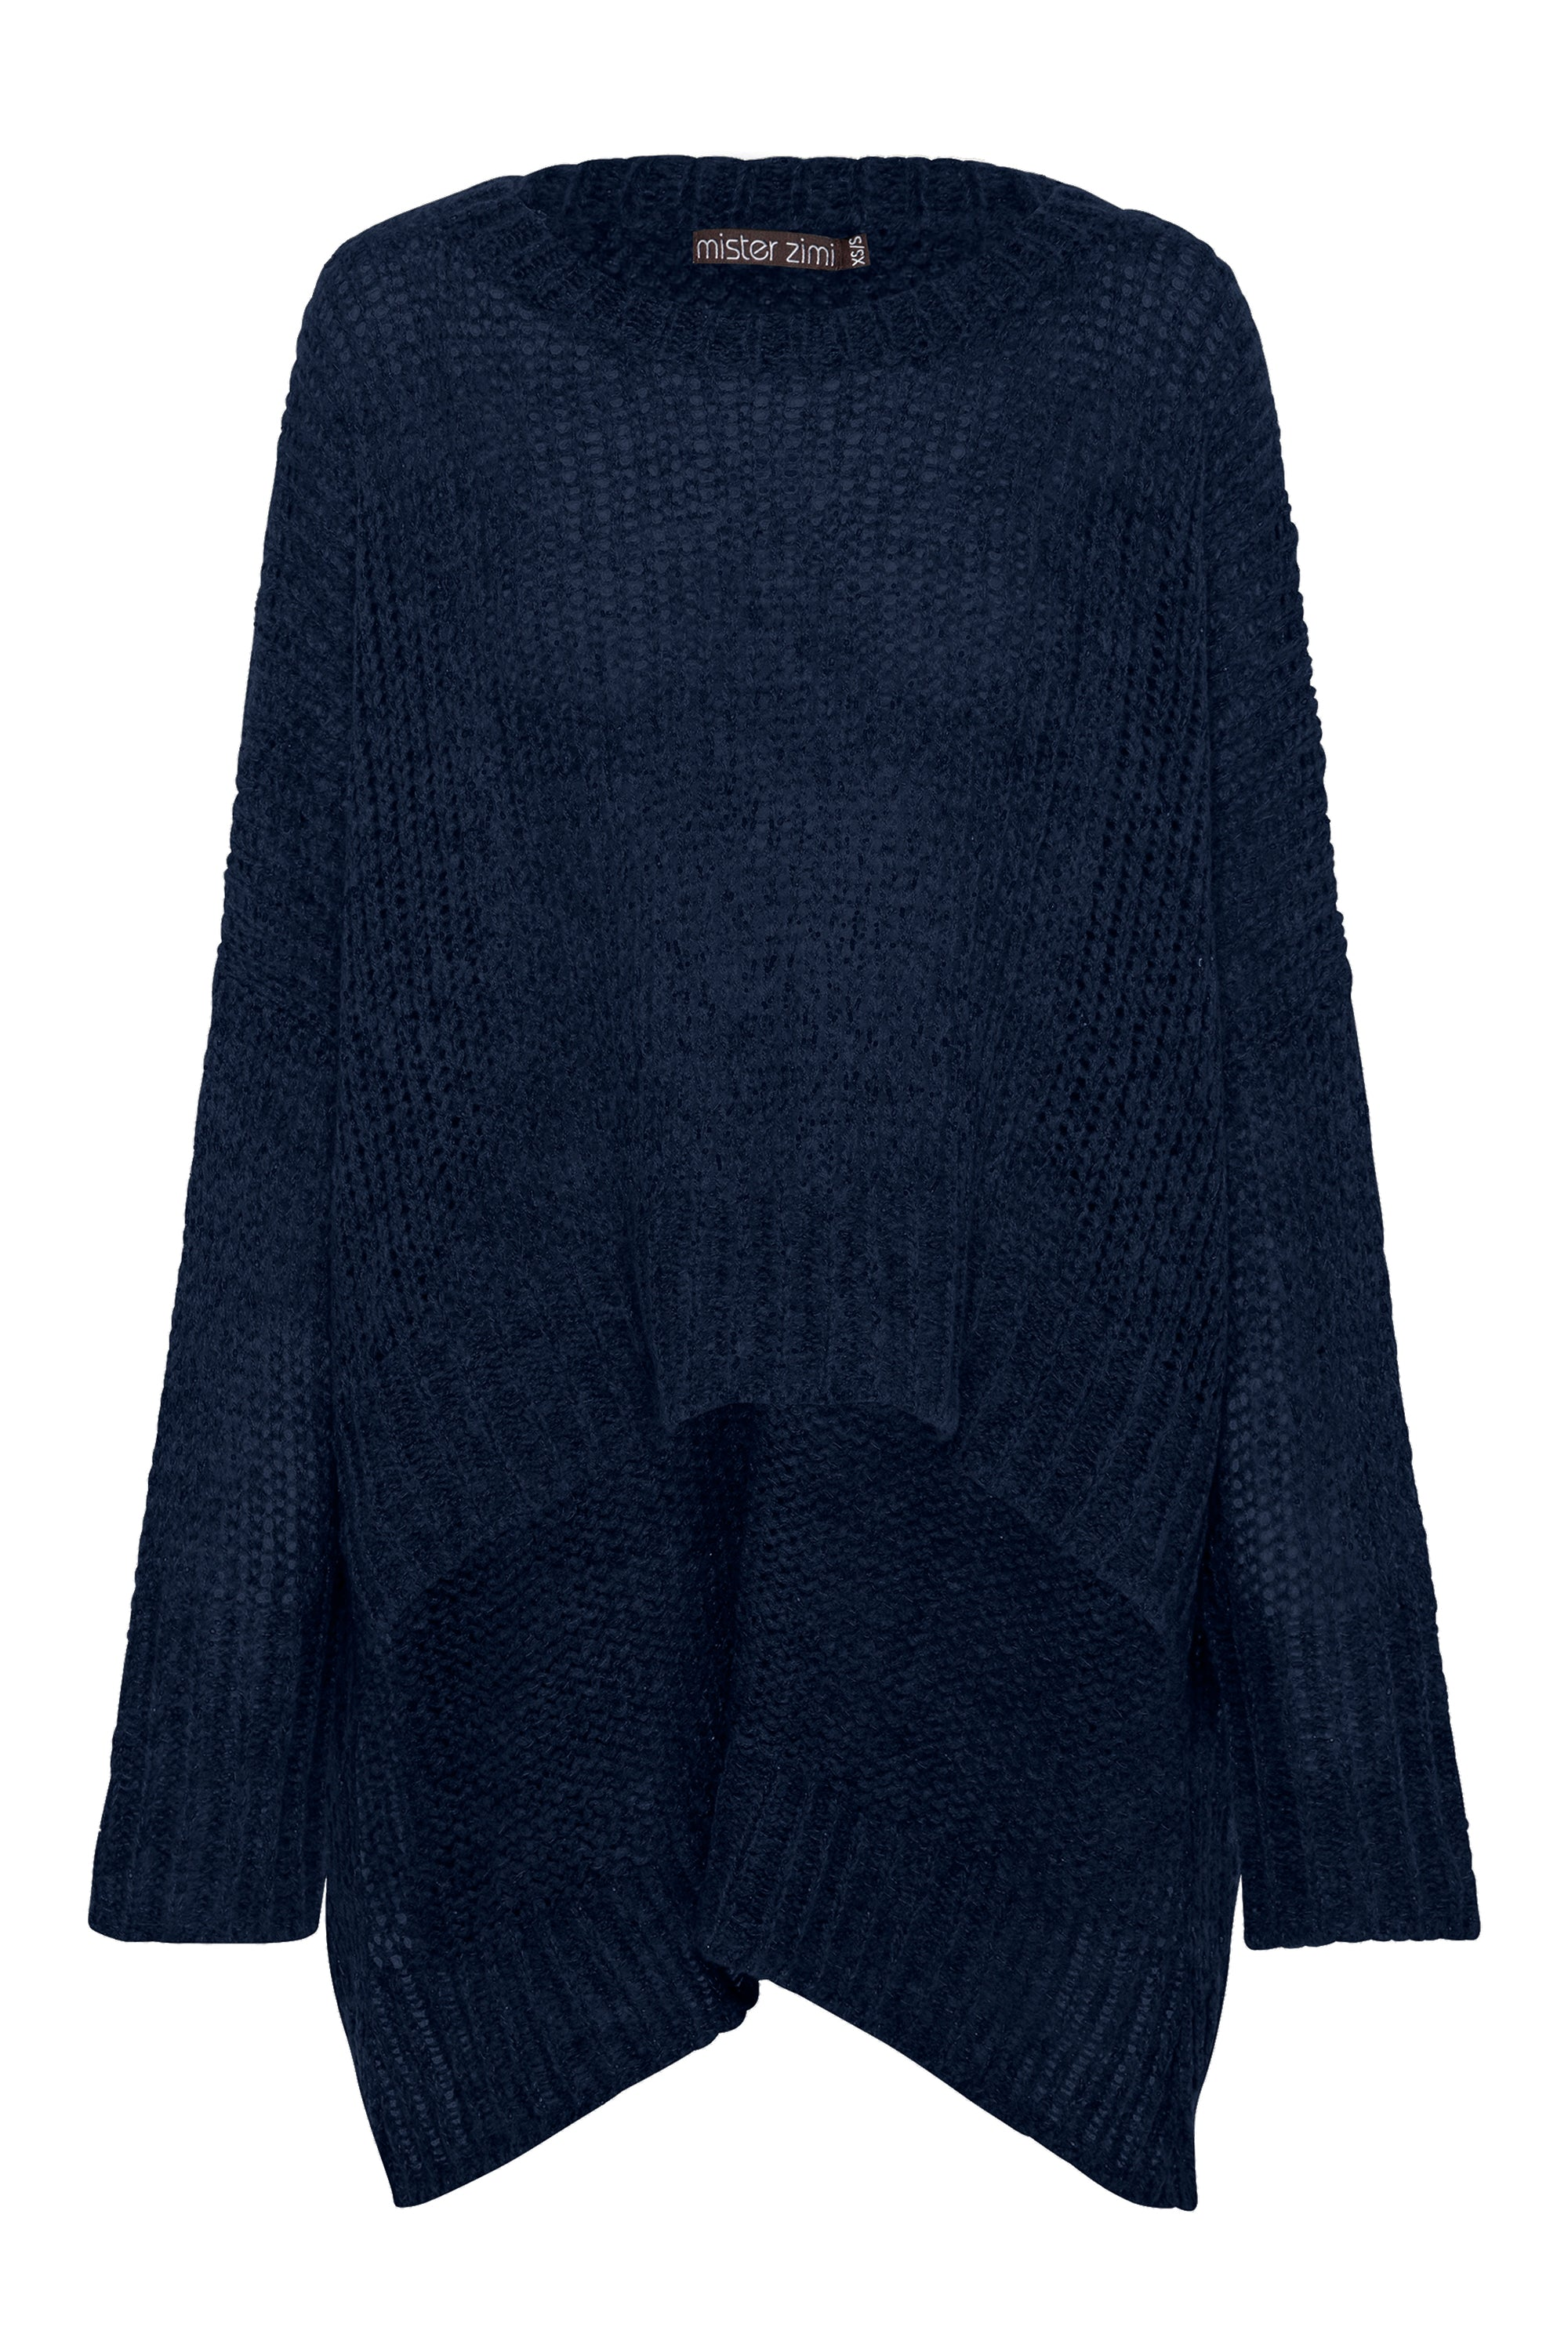 Binny Jumper In Navy